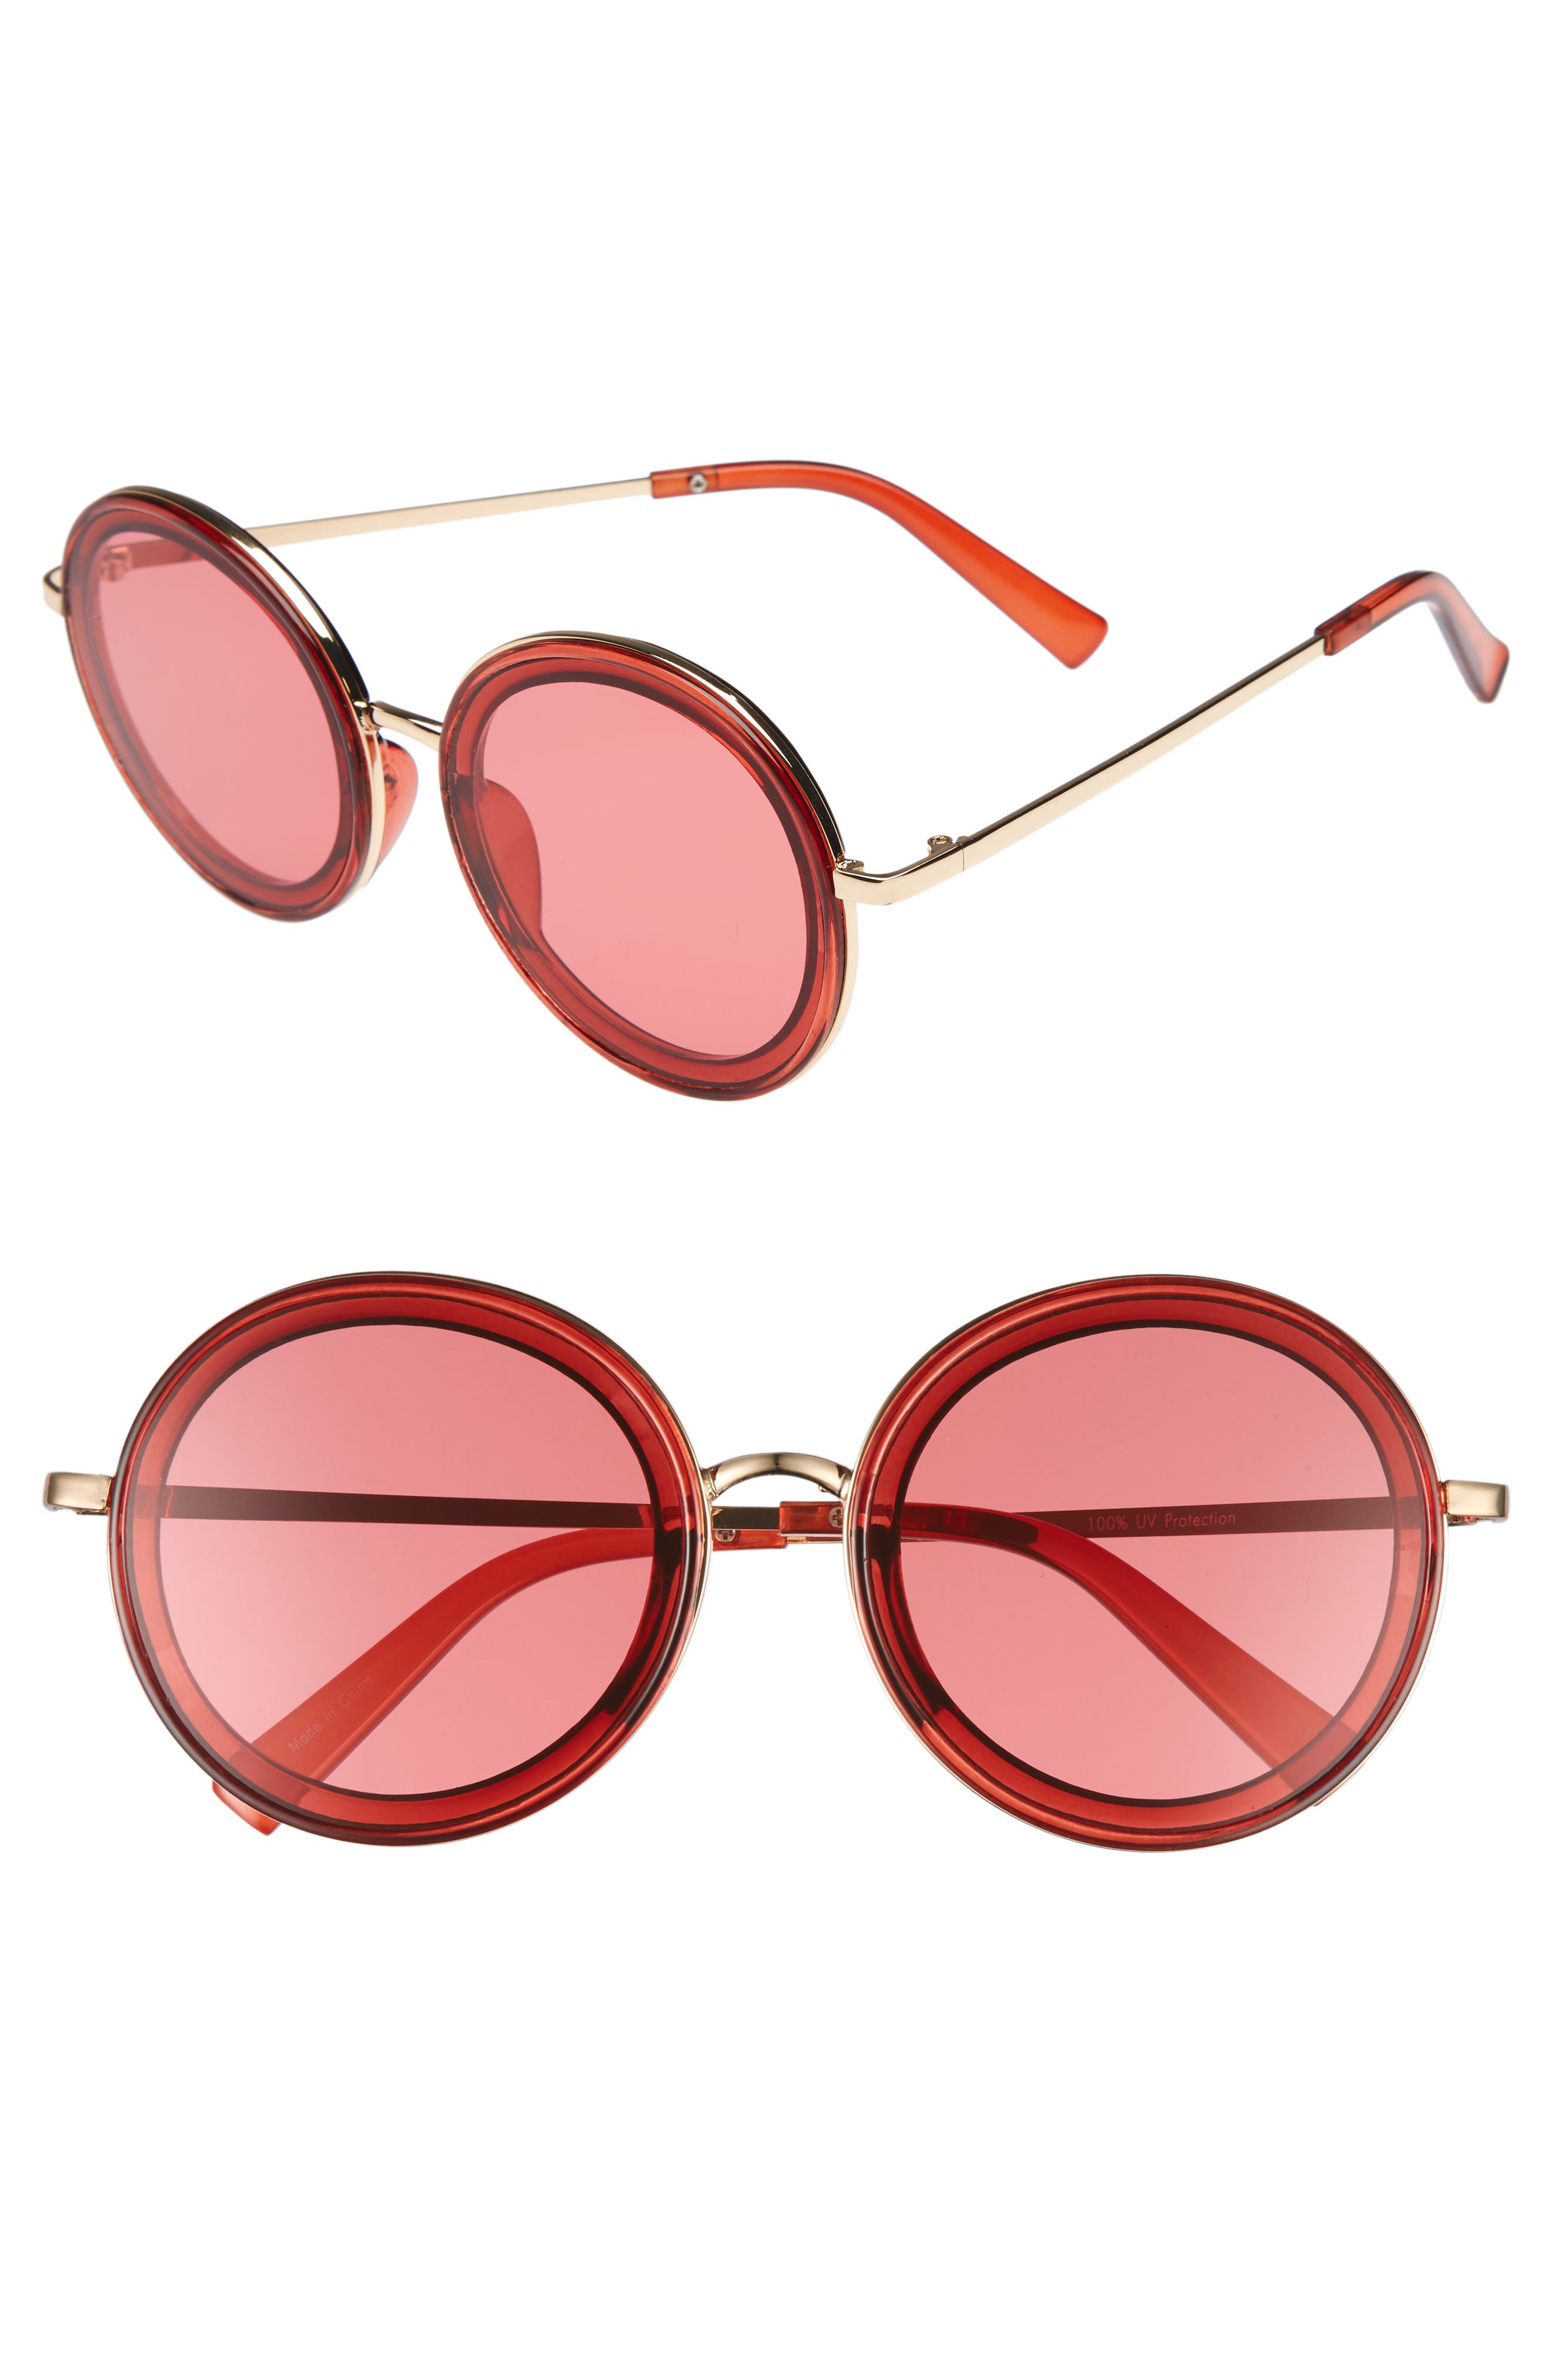 59mm Round Sunglasses,                         Main,                         color, Pink